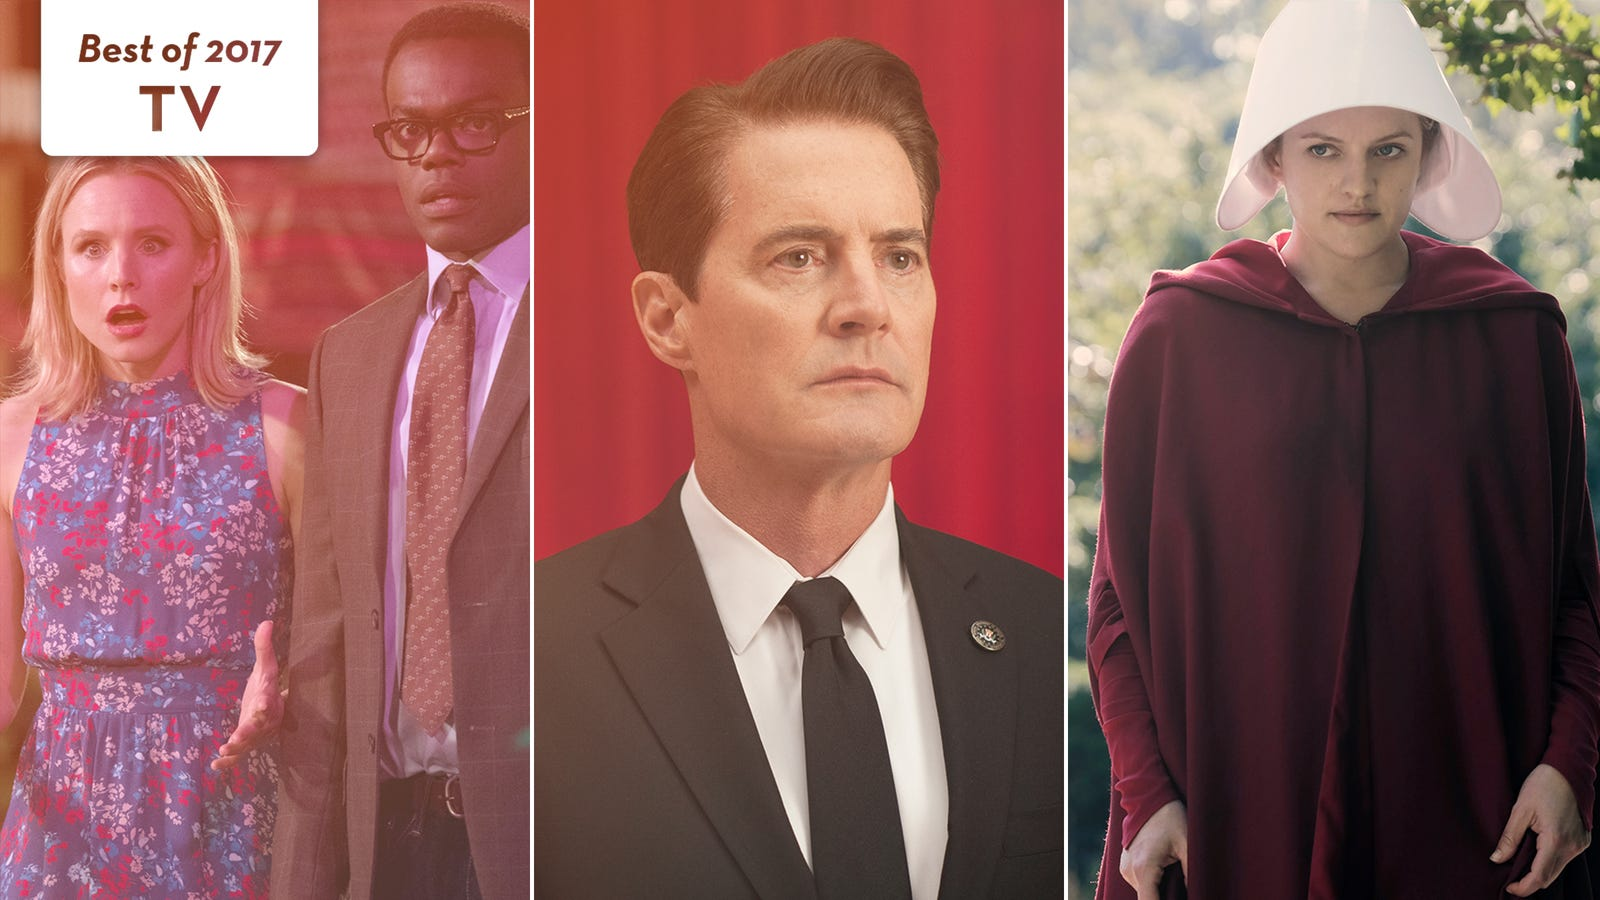 The A.V. Club's 20 best TV shows of 2017